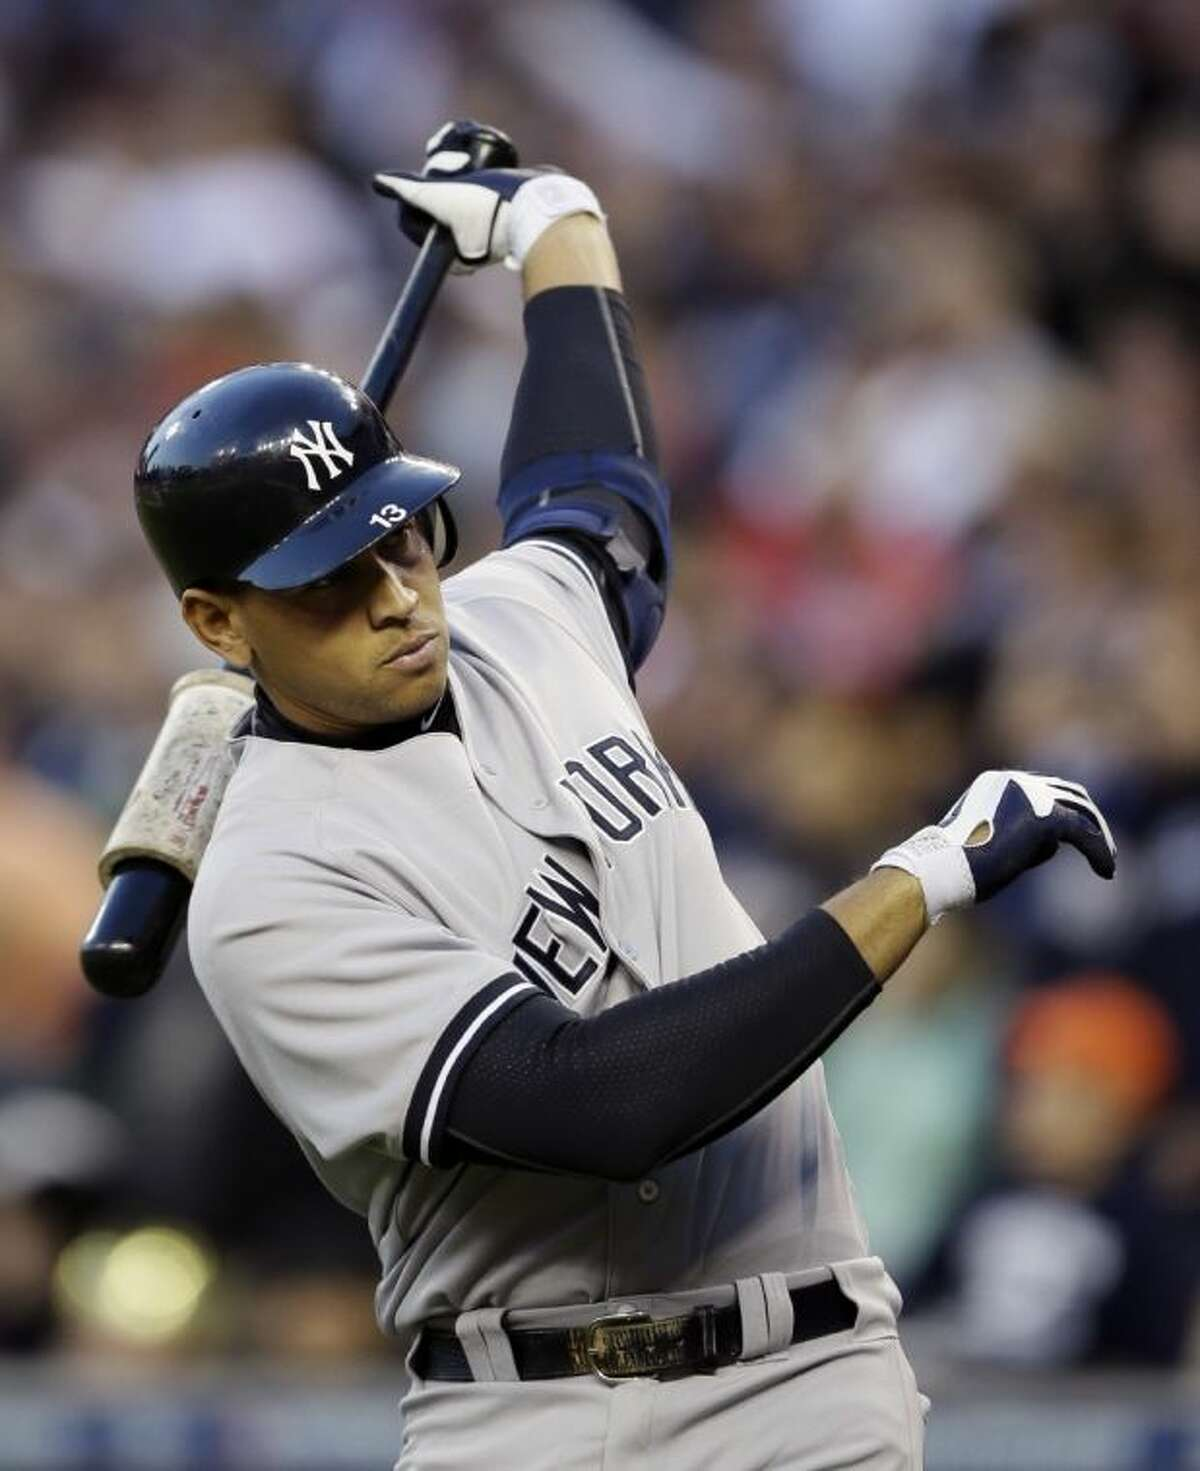 Alex Rodriguez has been linked to a new report that says records from an anti-aging clinic in the Miami area link Rodriguez and other players to the purchase of performance-enhancing drugs.